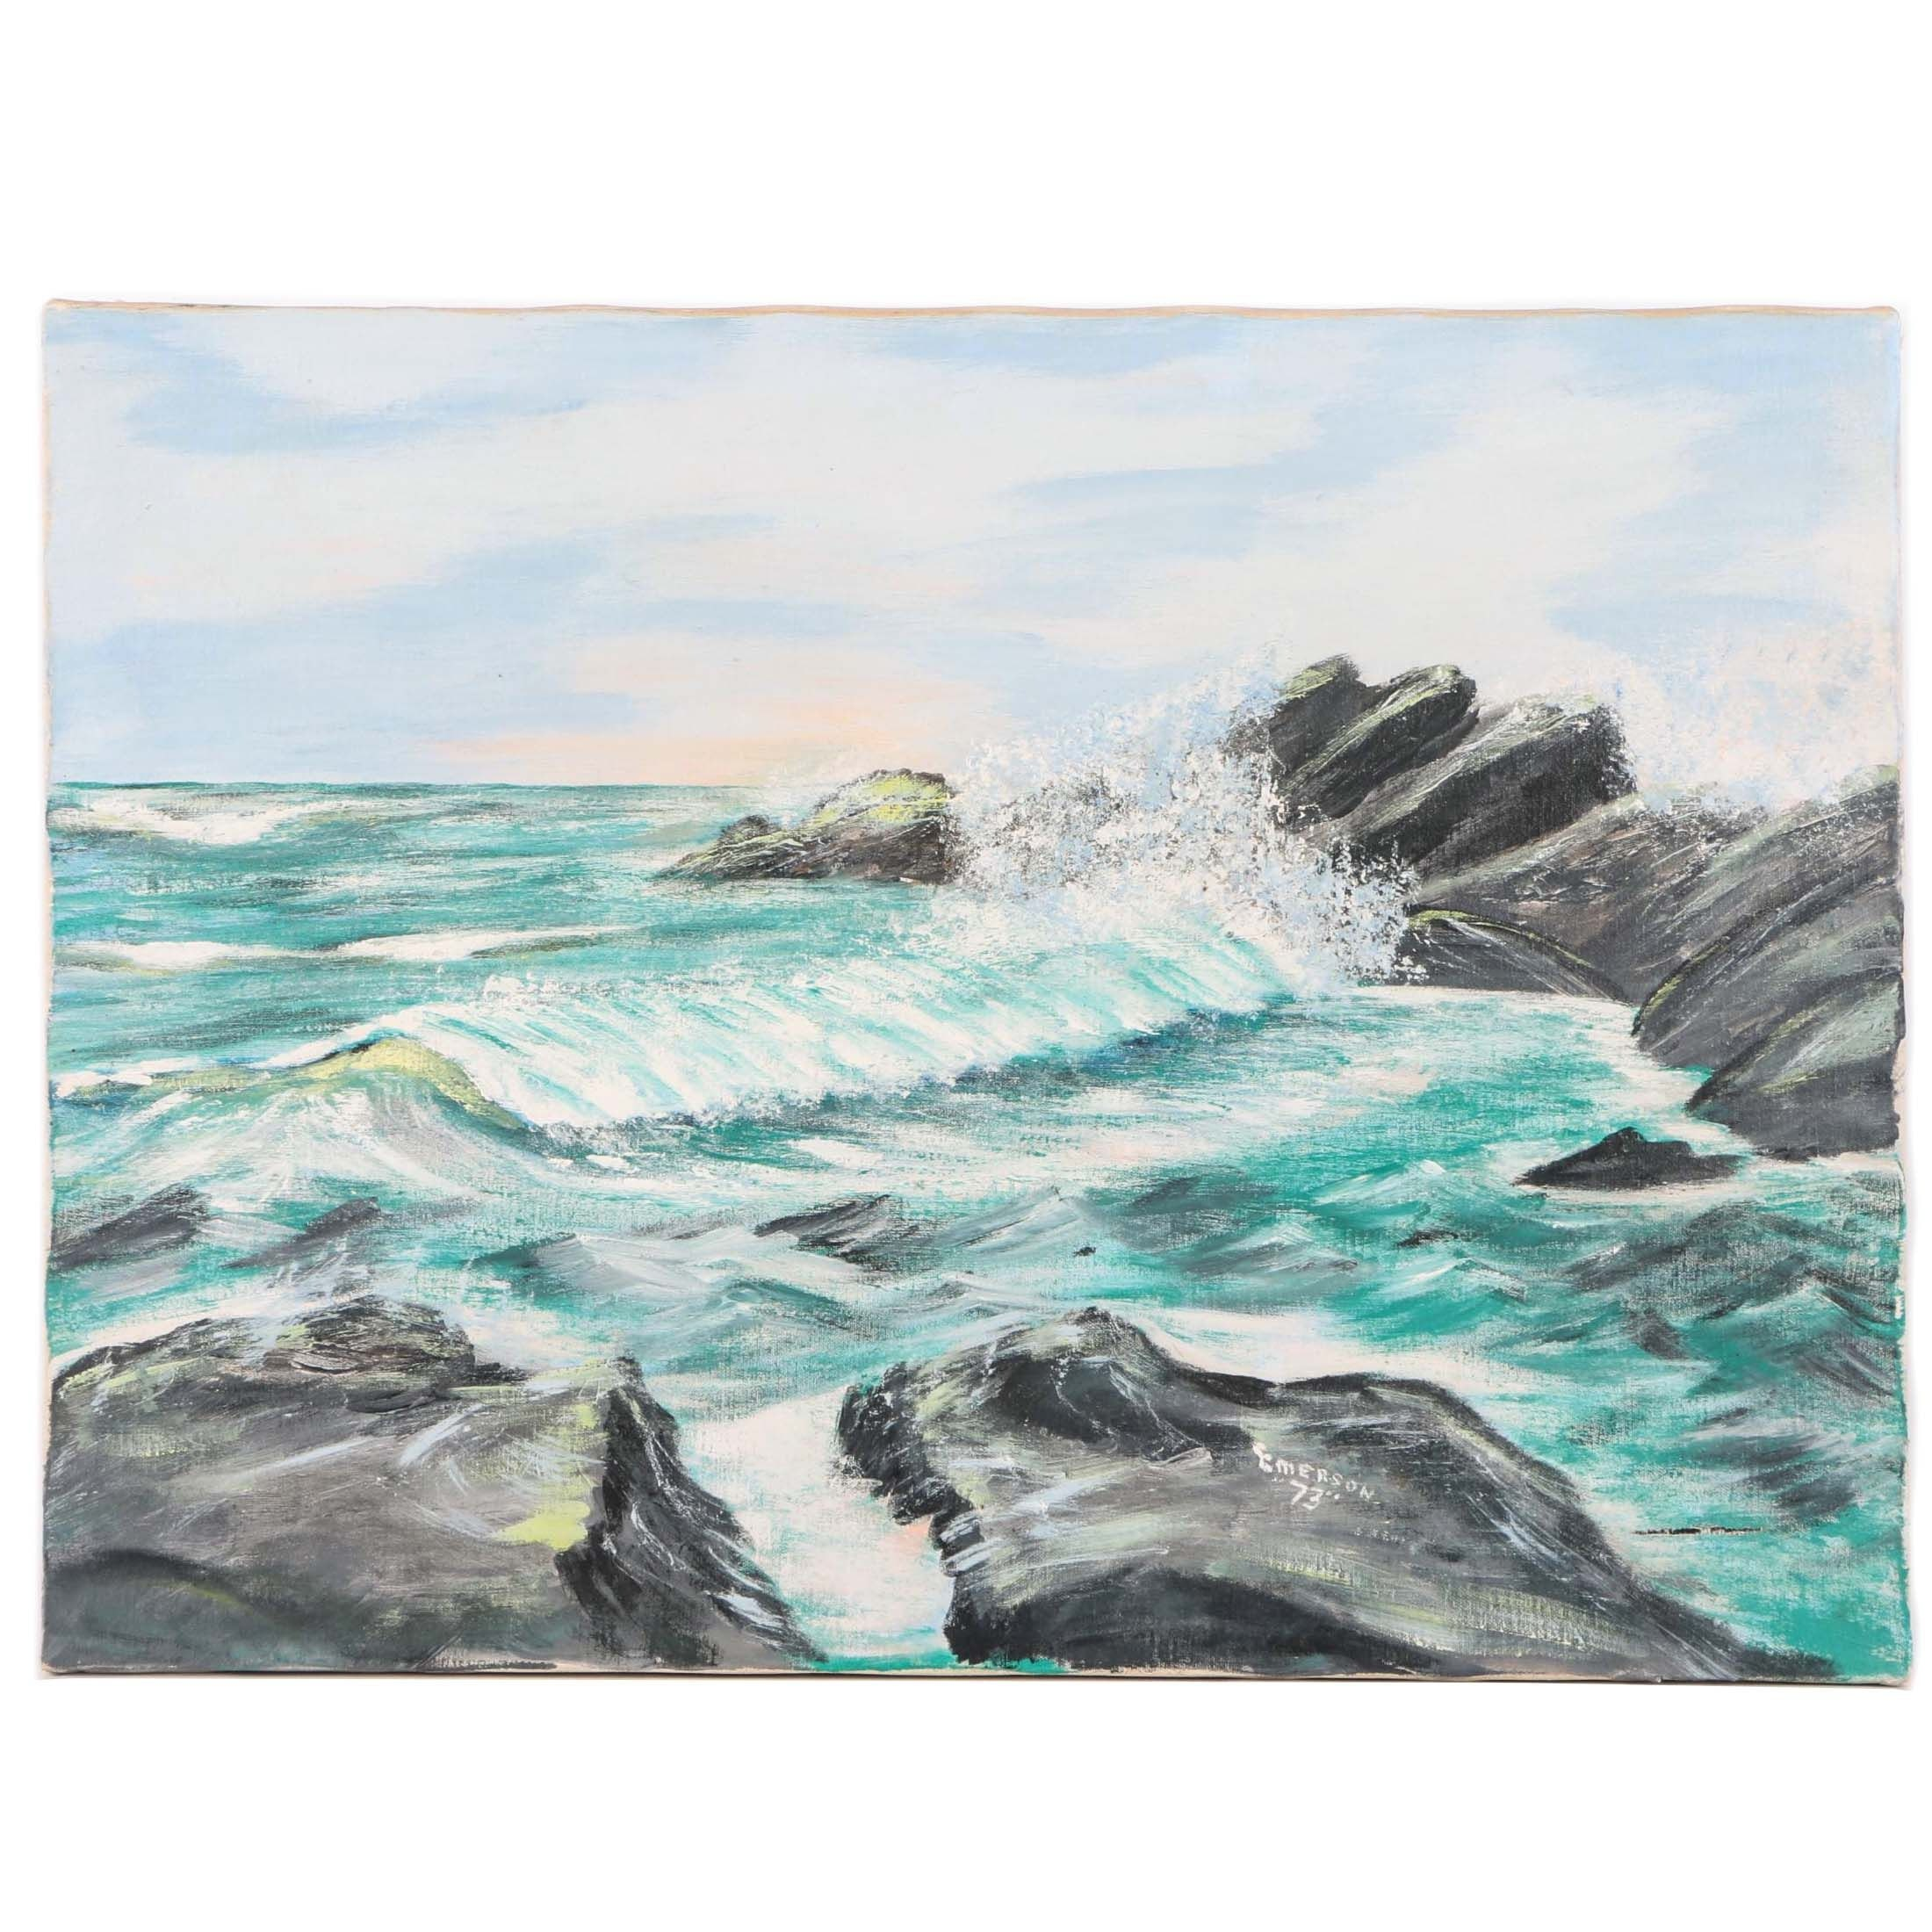 Emerson 1973 Oil Painting on Canvas of Waves Crashing Against a Rocky Shoreline